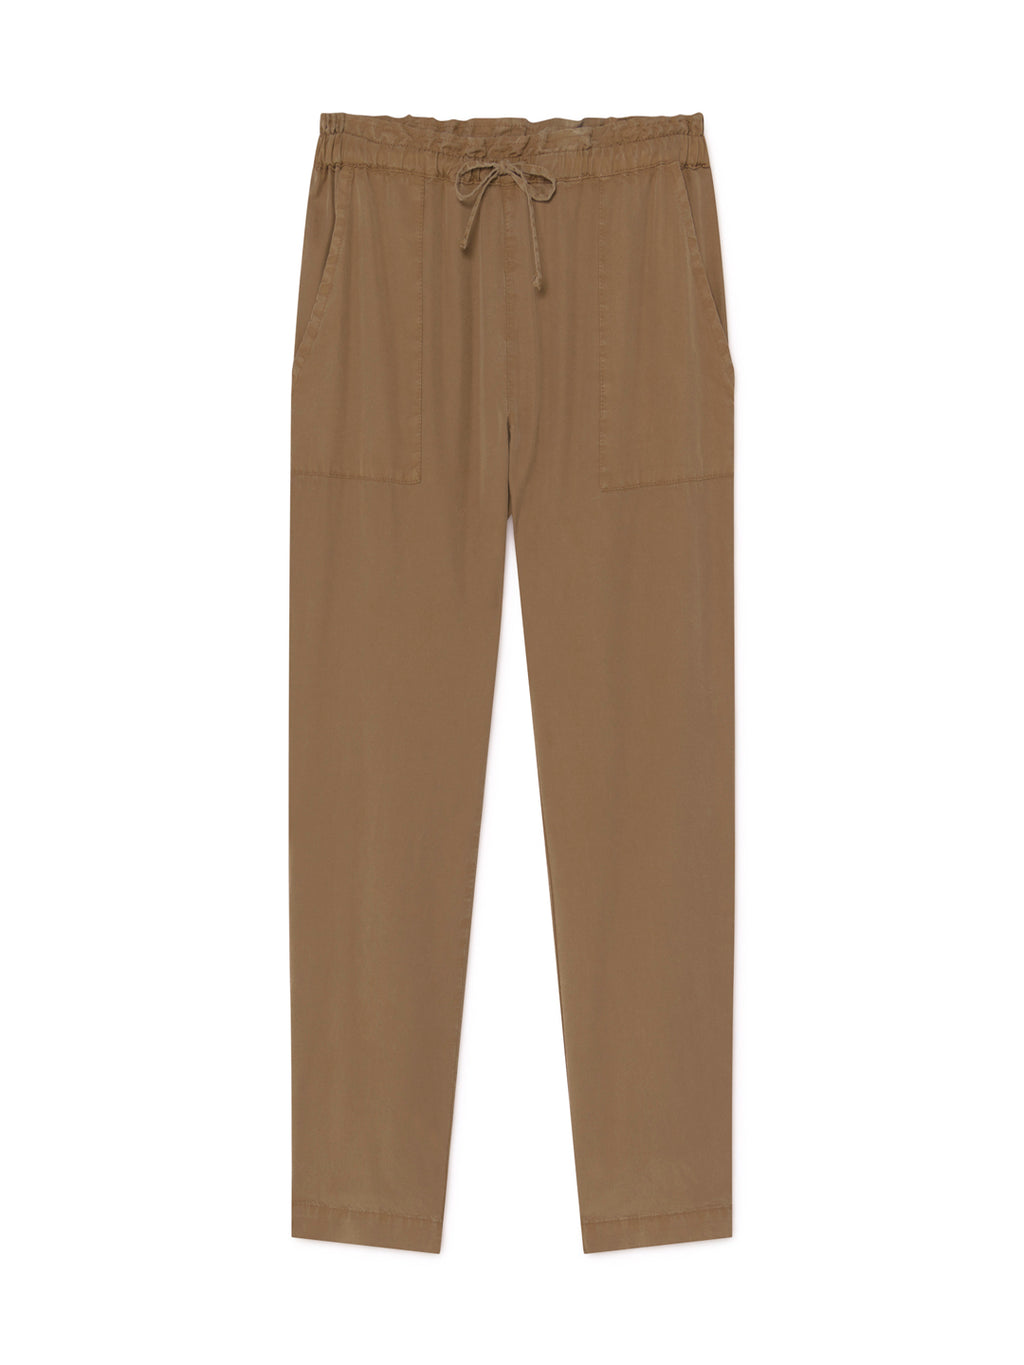 TWOTHIRDS Womens Pants: Barra - Pecan front